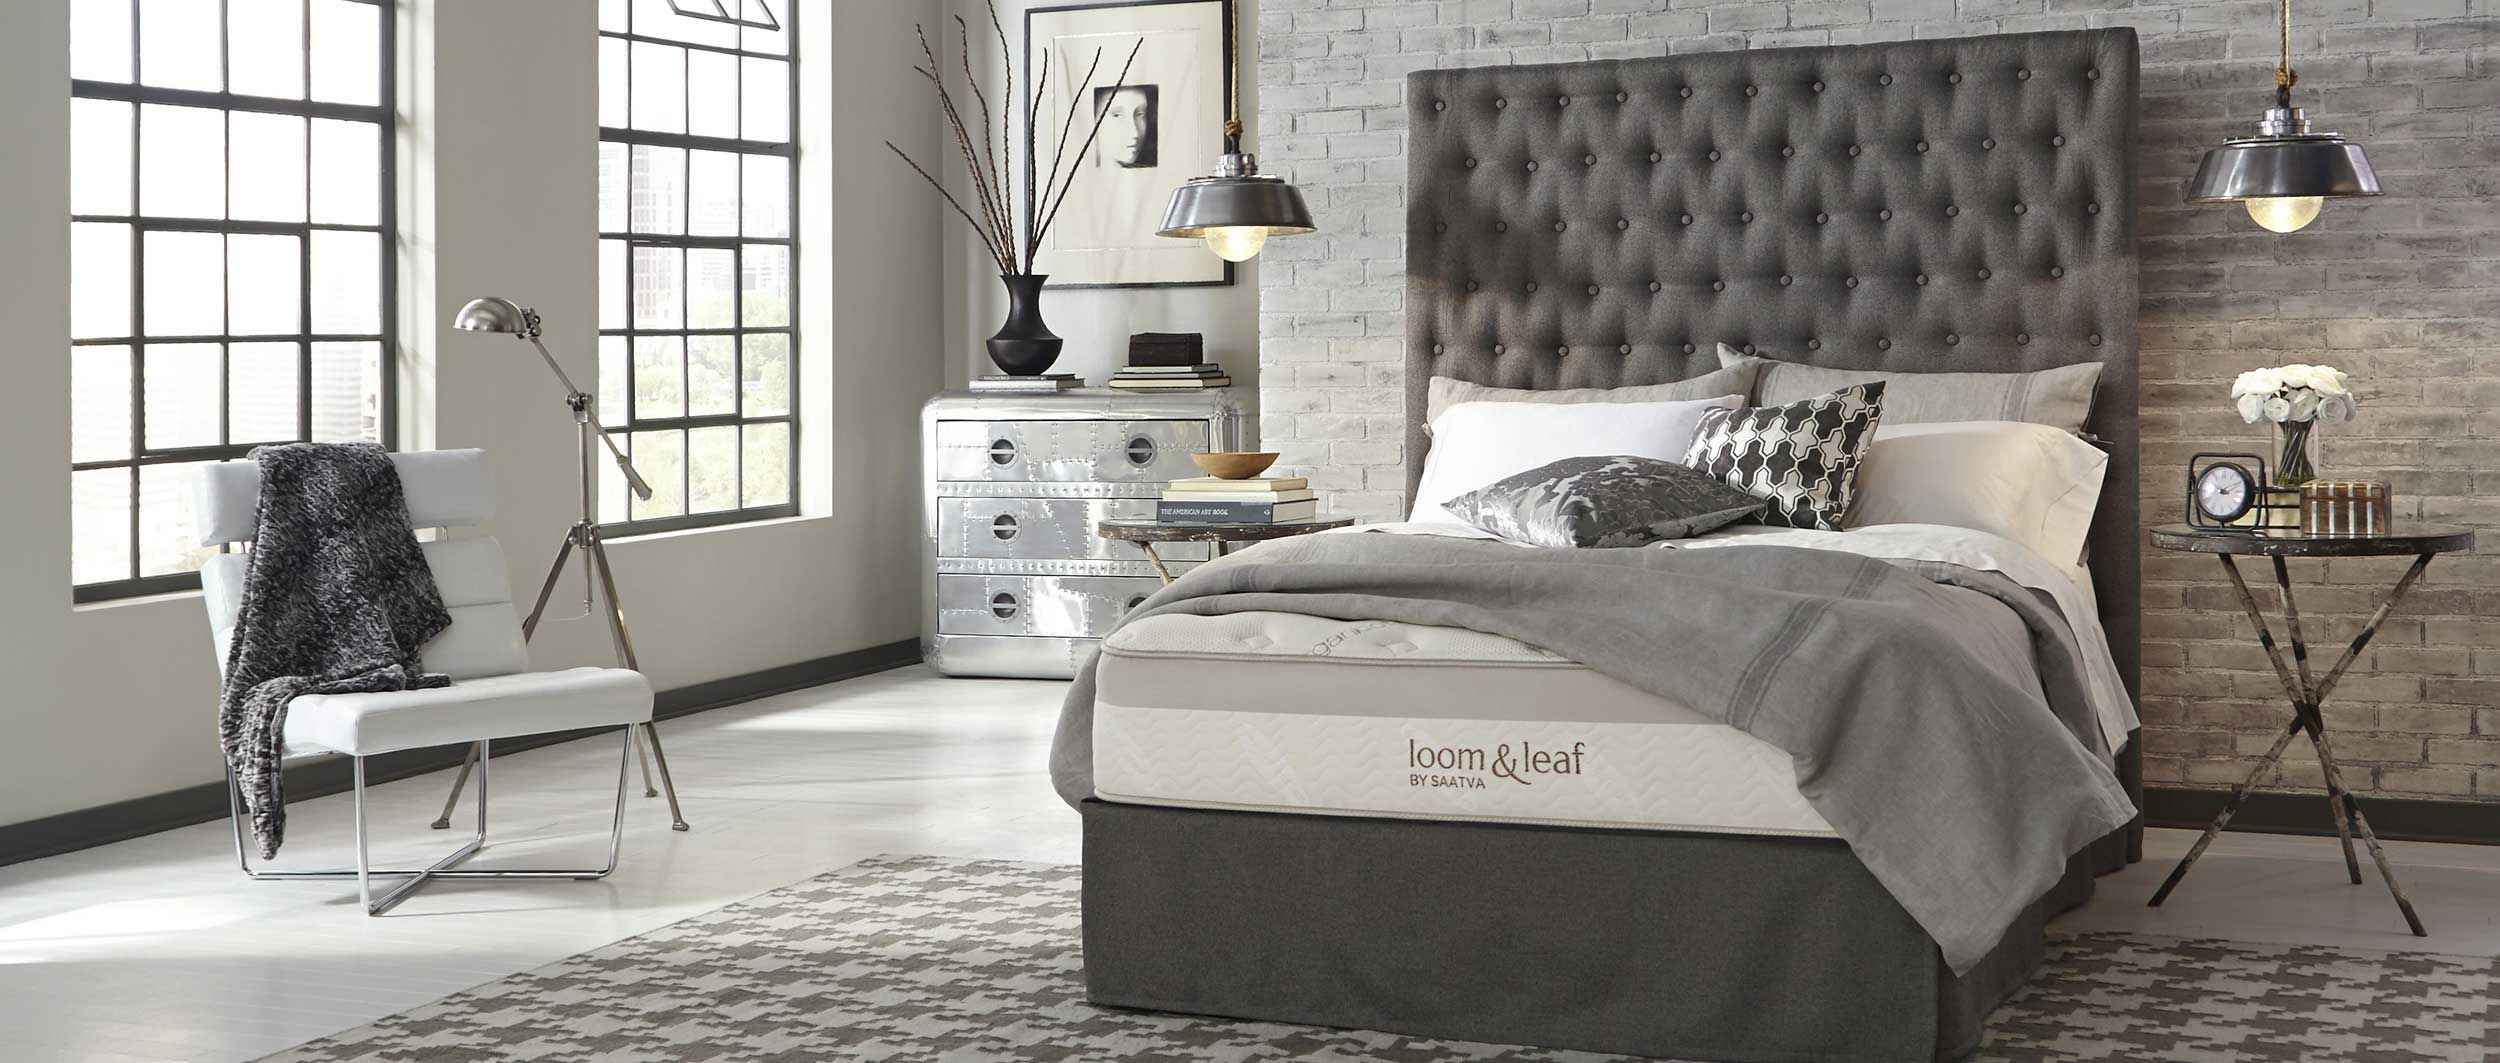 Amerisleep Was One Of The First Online Only Mattress Companies To Launch They Started Making Mattresses In 2007 And Have Since Become A Household Name